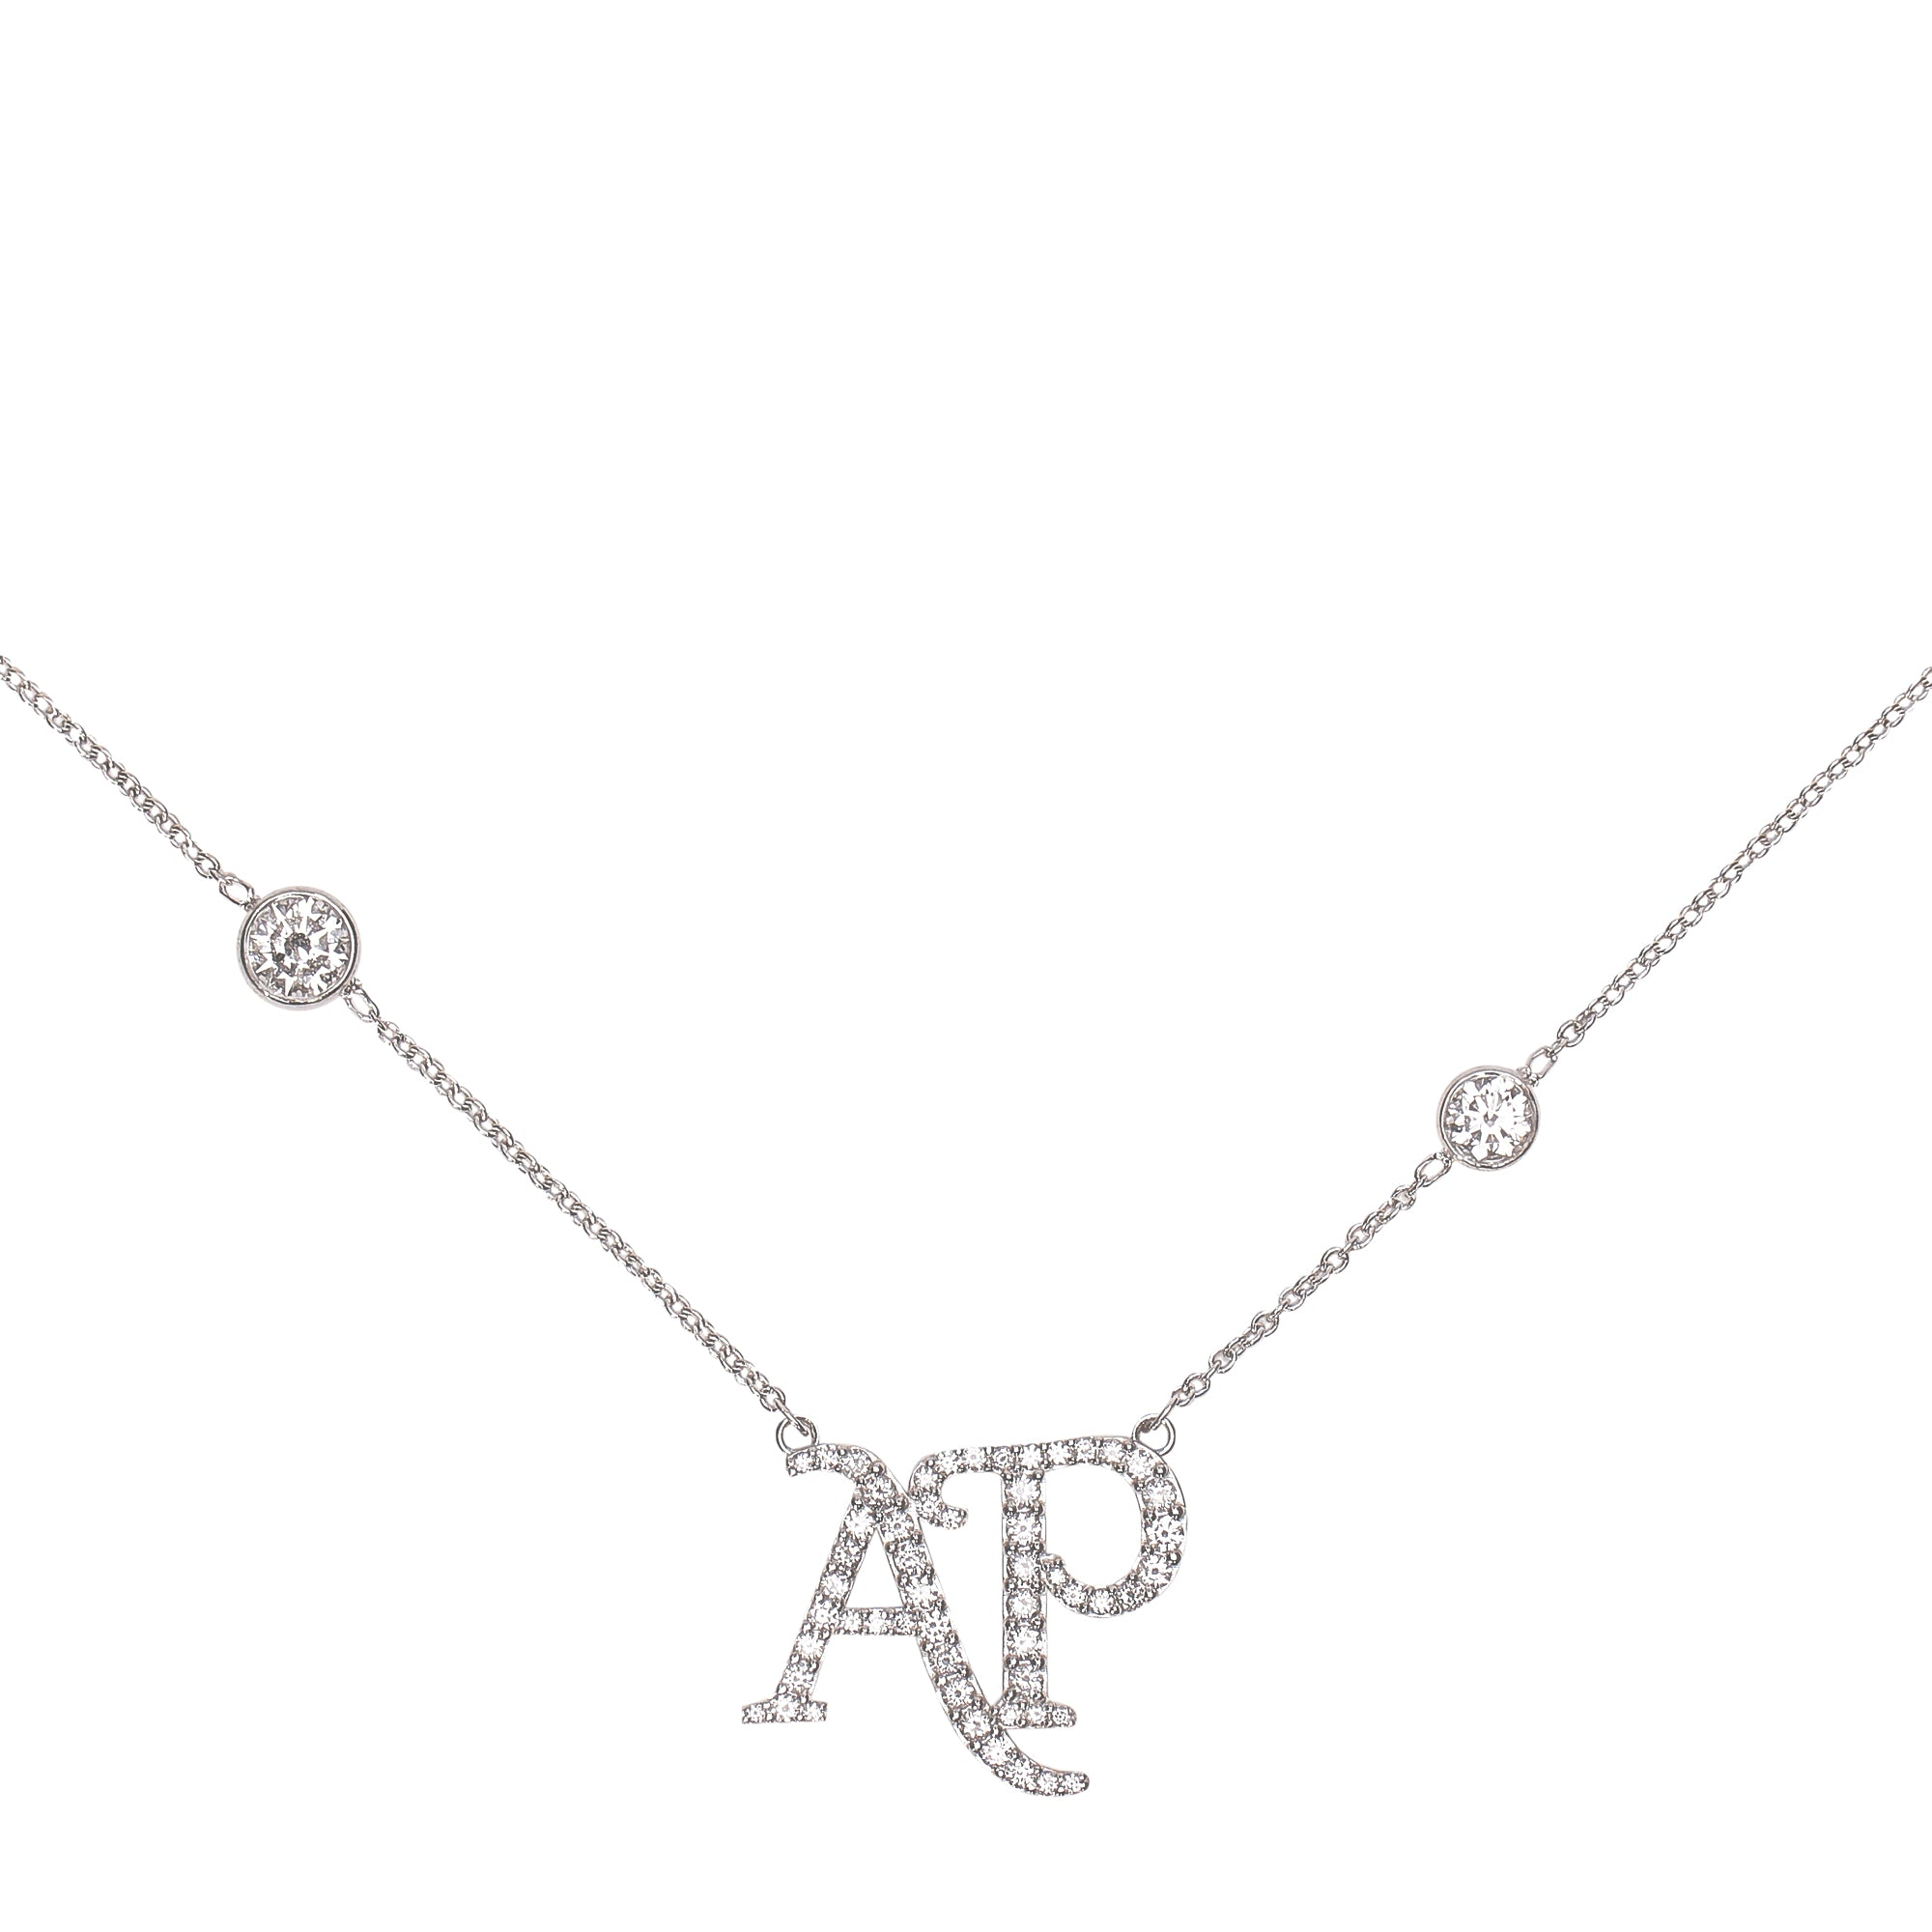 DIAMOND LOGO NECKLACE